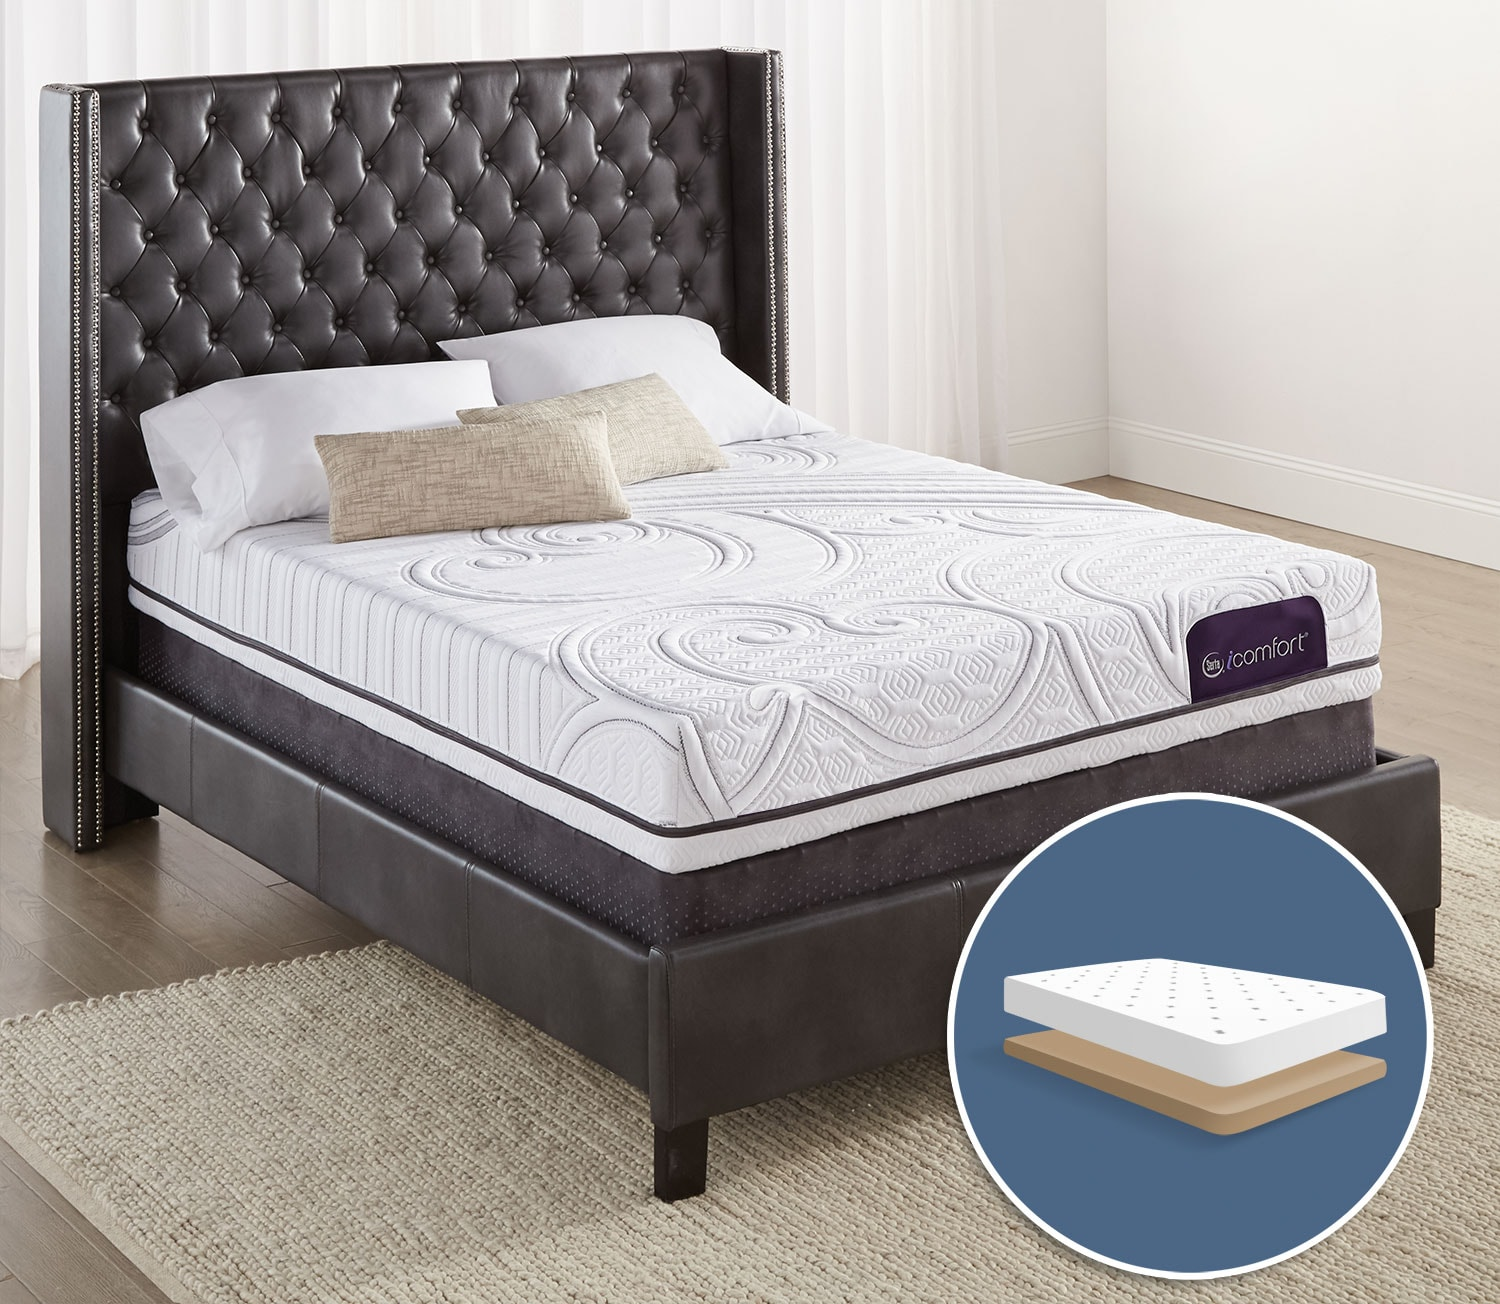 Serta iComfort Aura 2 Firm Full Low-Profile Mattress Set